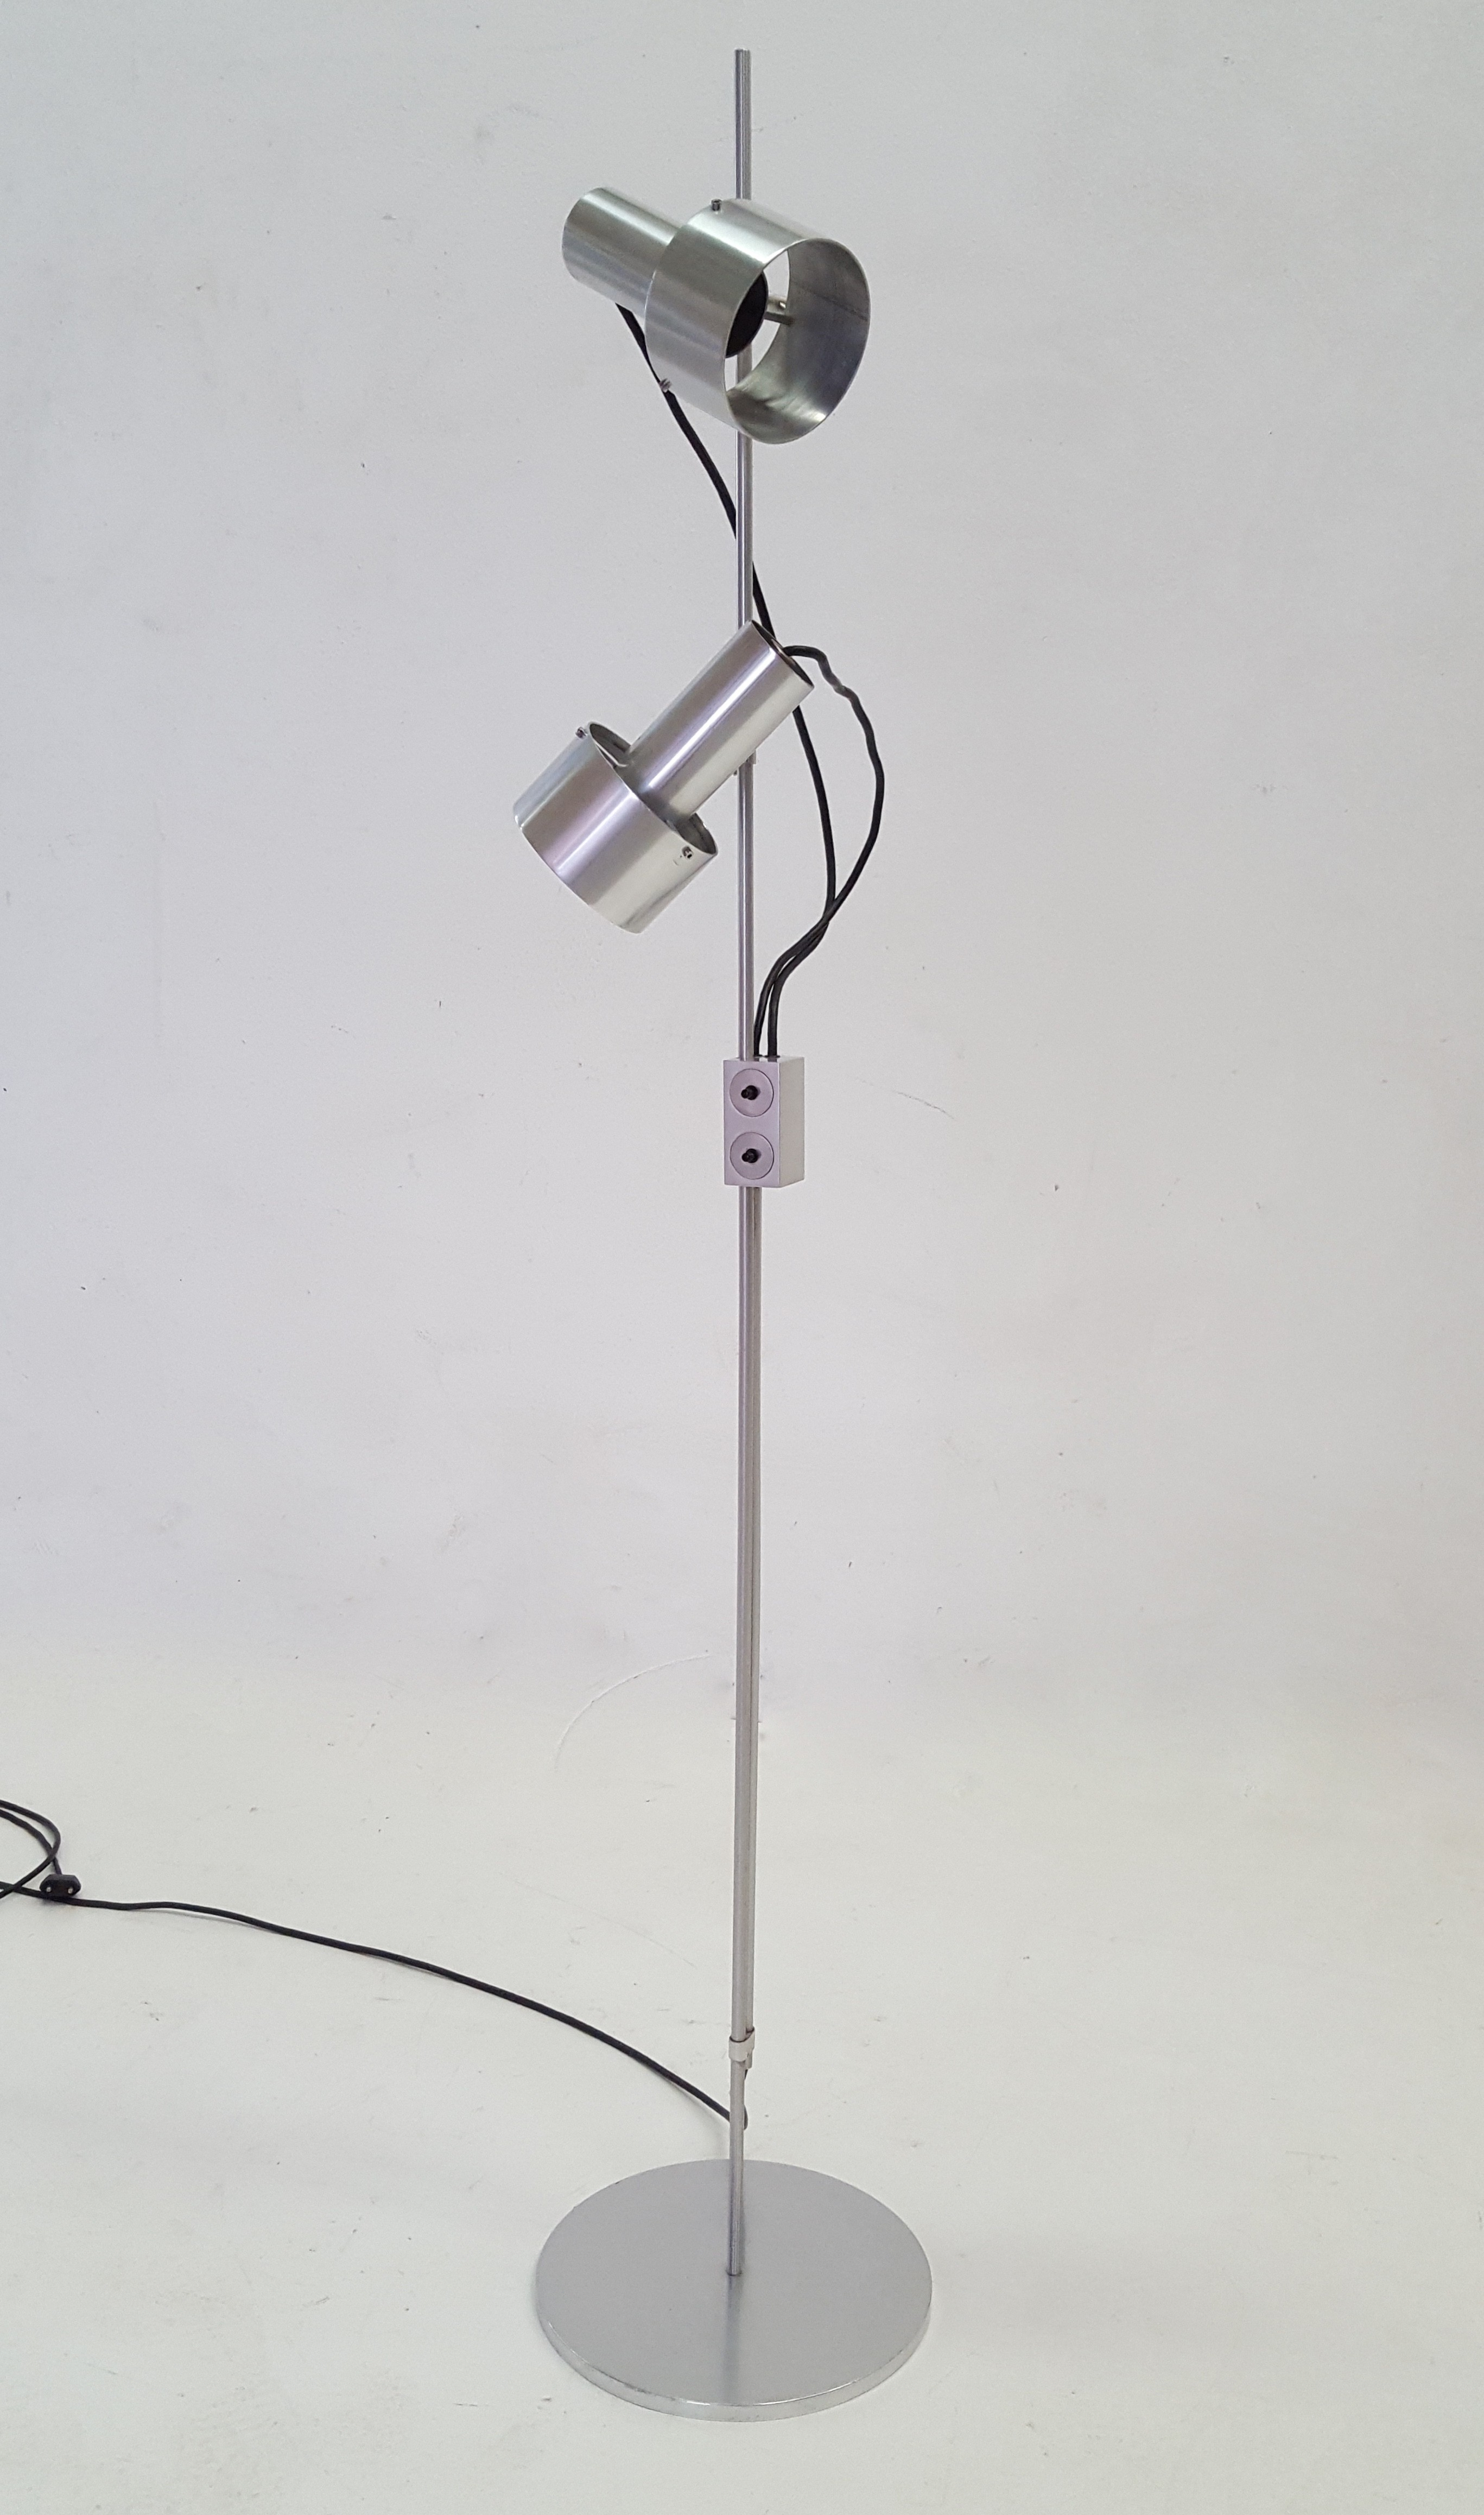 TA Spot Aluminum Floor Lamp By Peter Nelson For Architectural Lighting Compan